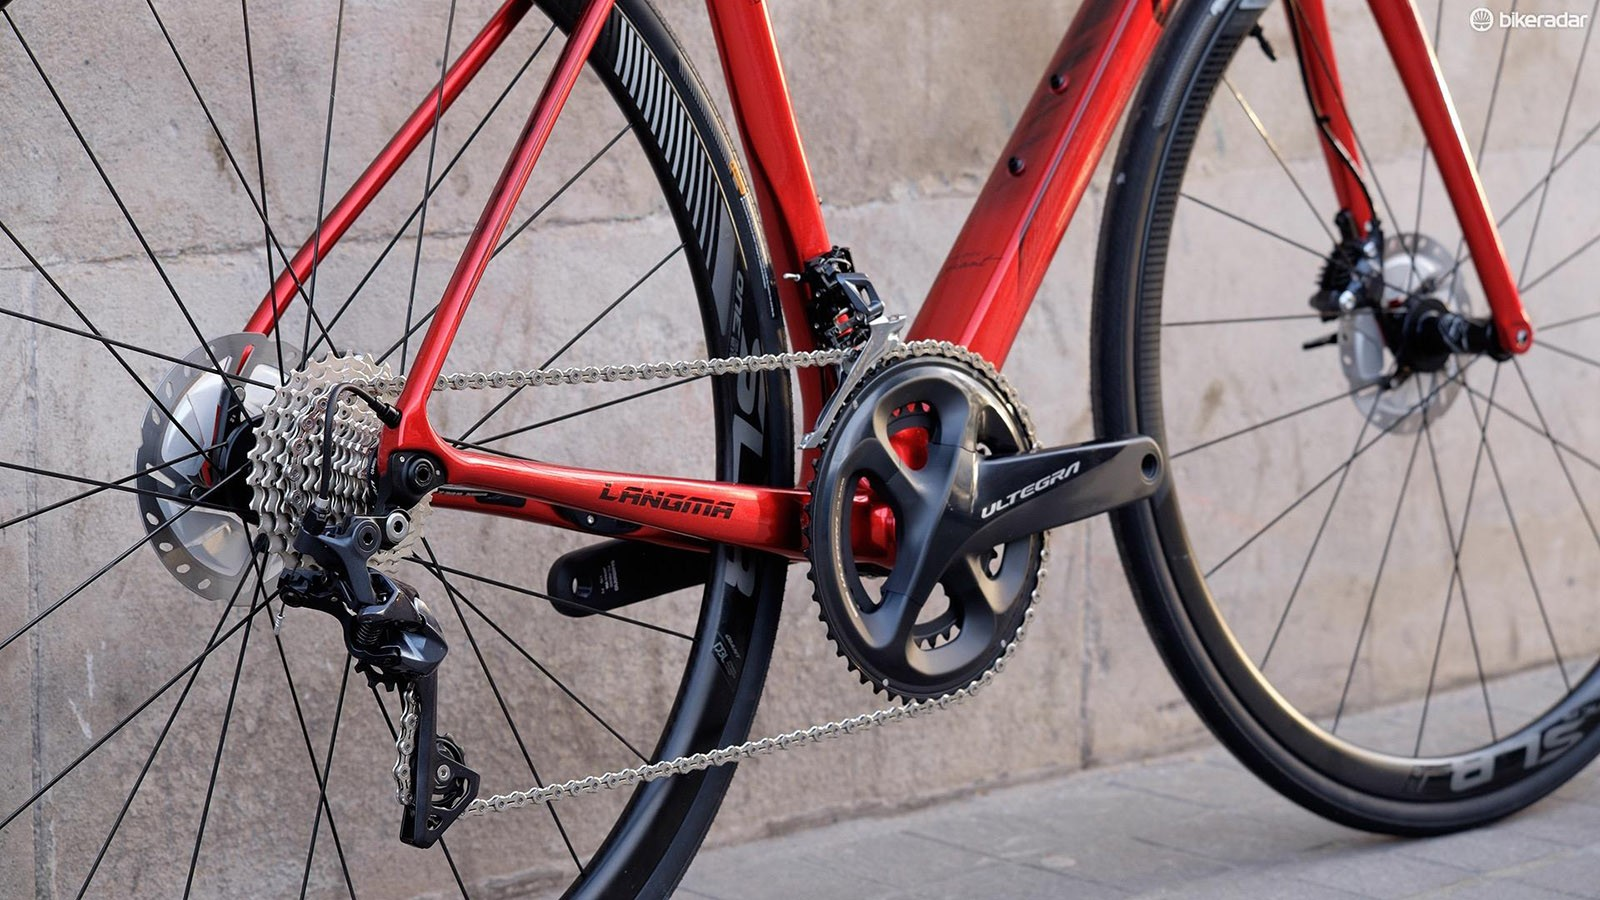 Shimano's Ultegra groupset with an 11-28t cassette provides a good range of gears for most terrain